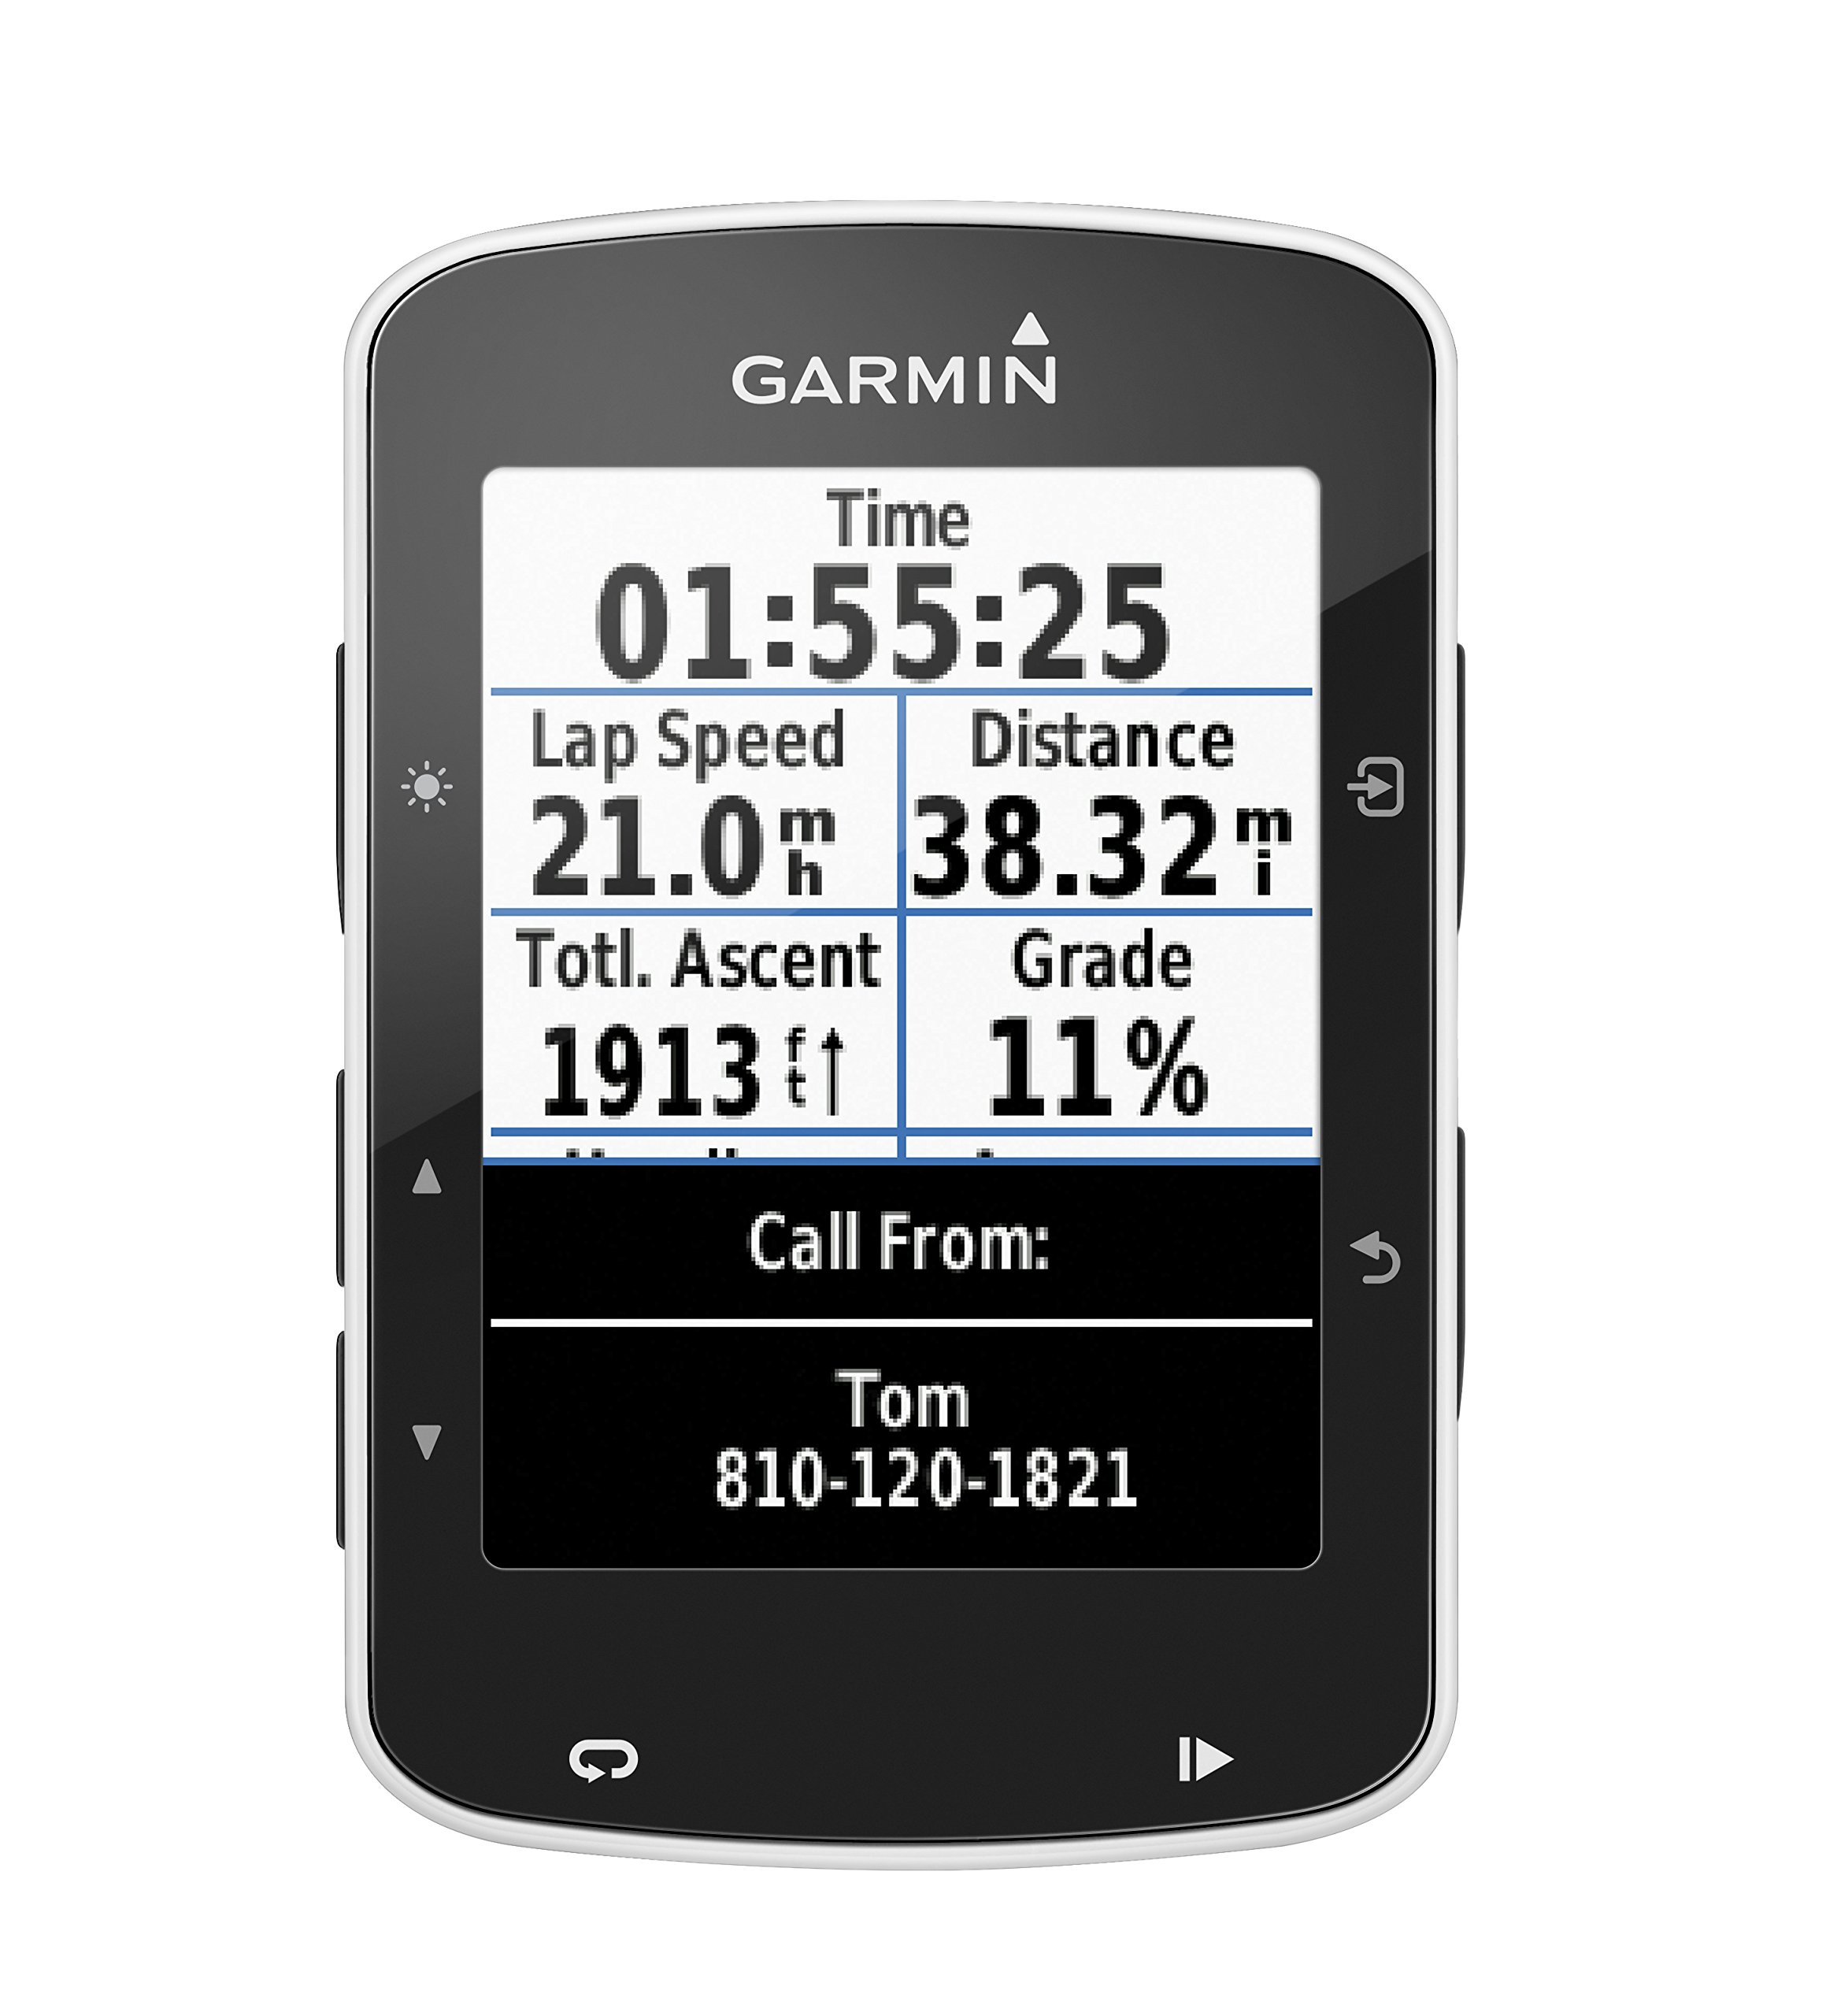 Garmin Edge 520 with PlayBetter Portable USB Charger, Hard Carrying Case, Bike Mounts & USB Cable POWER BUNDLE | High-Res Color Display | GPS Bike Computer by PlayBetter (Image #5)